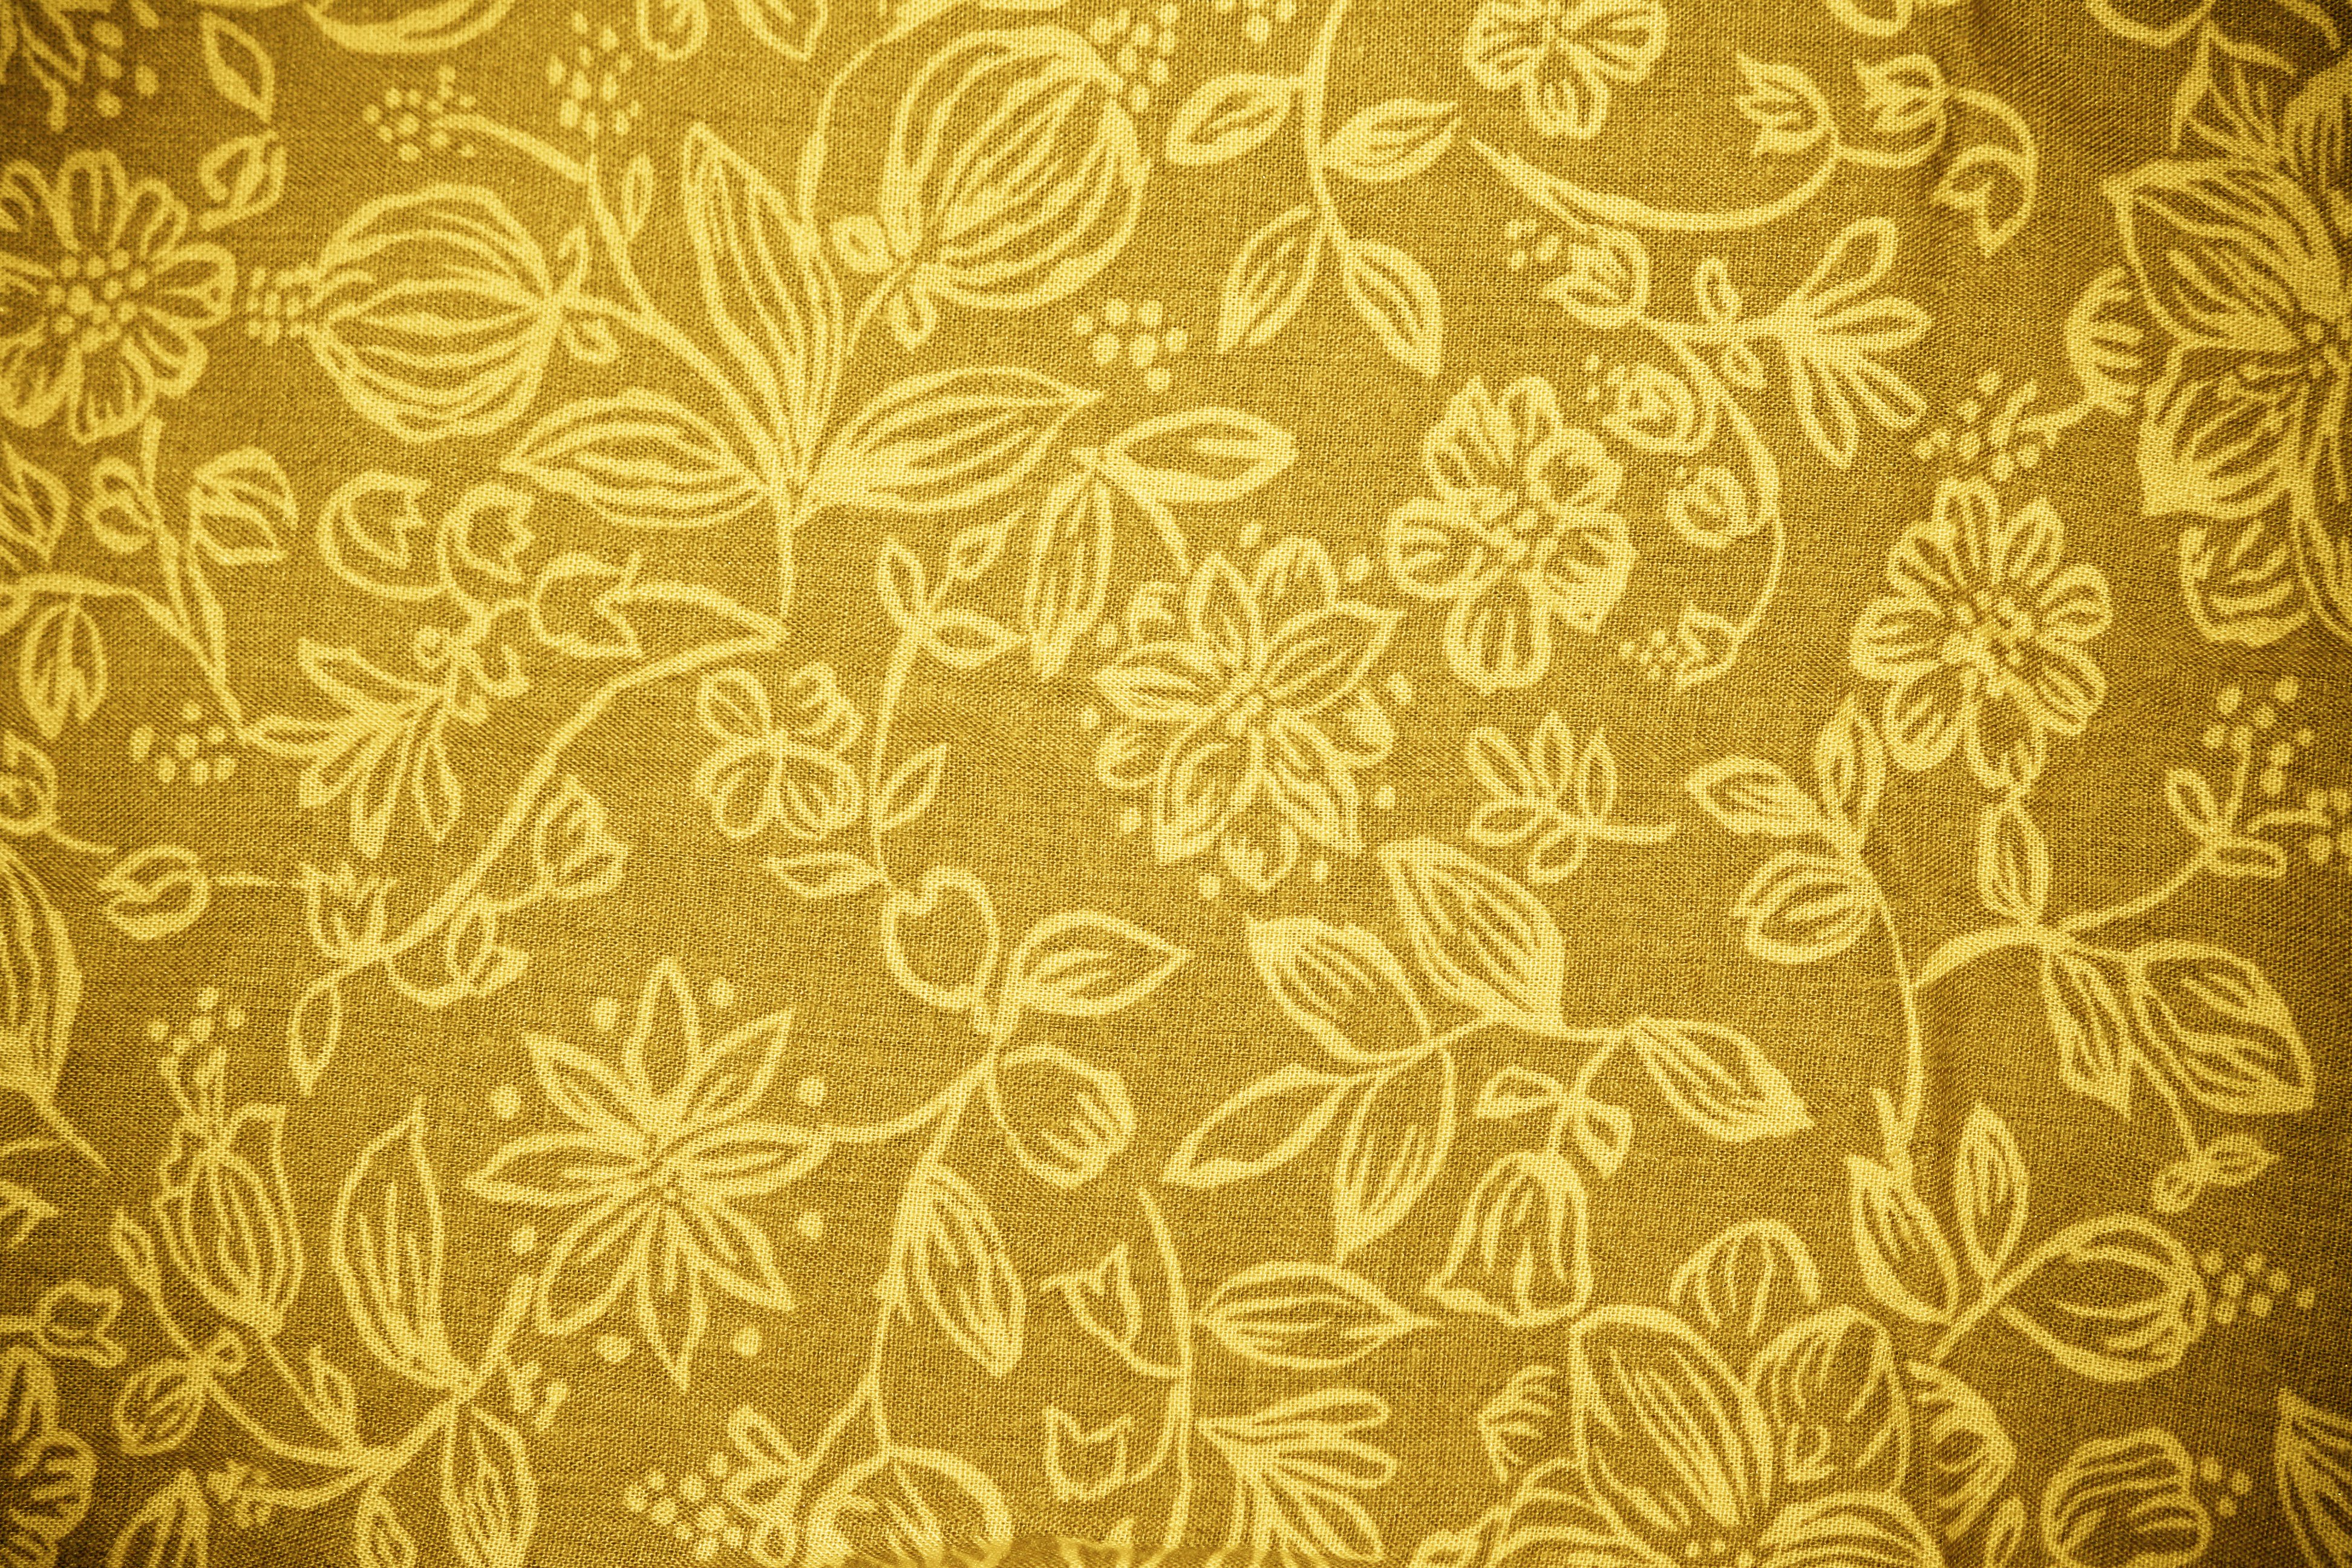 Gold Fabric with Floral Pattern Texture   High Resolution Photo 3888x2592